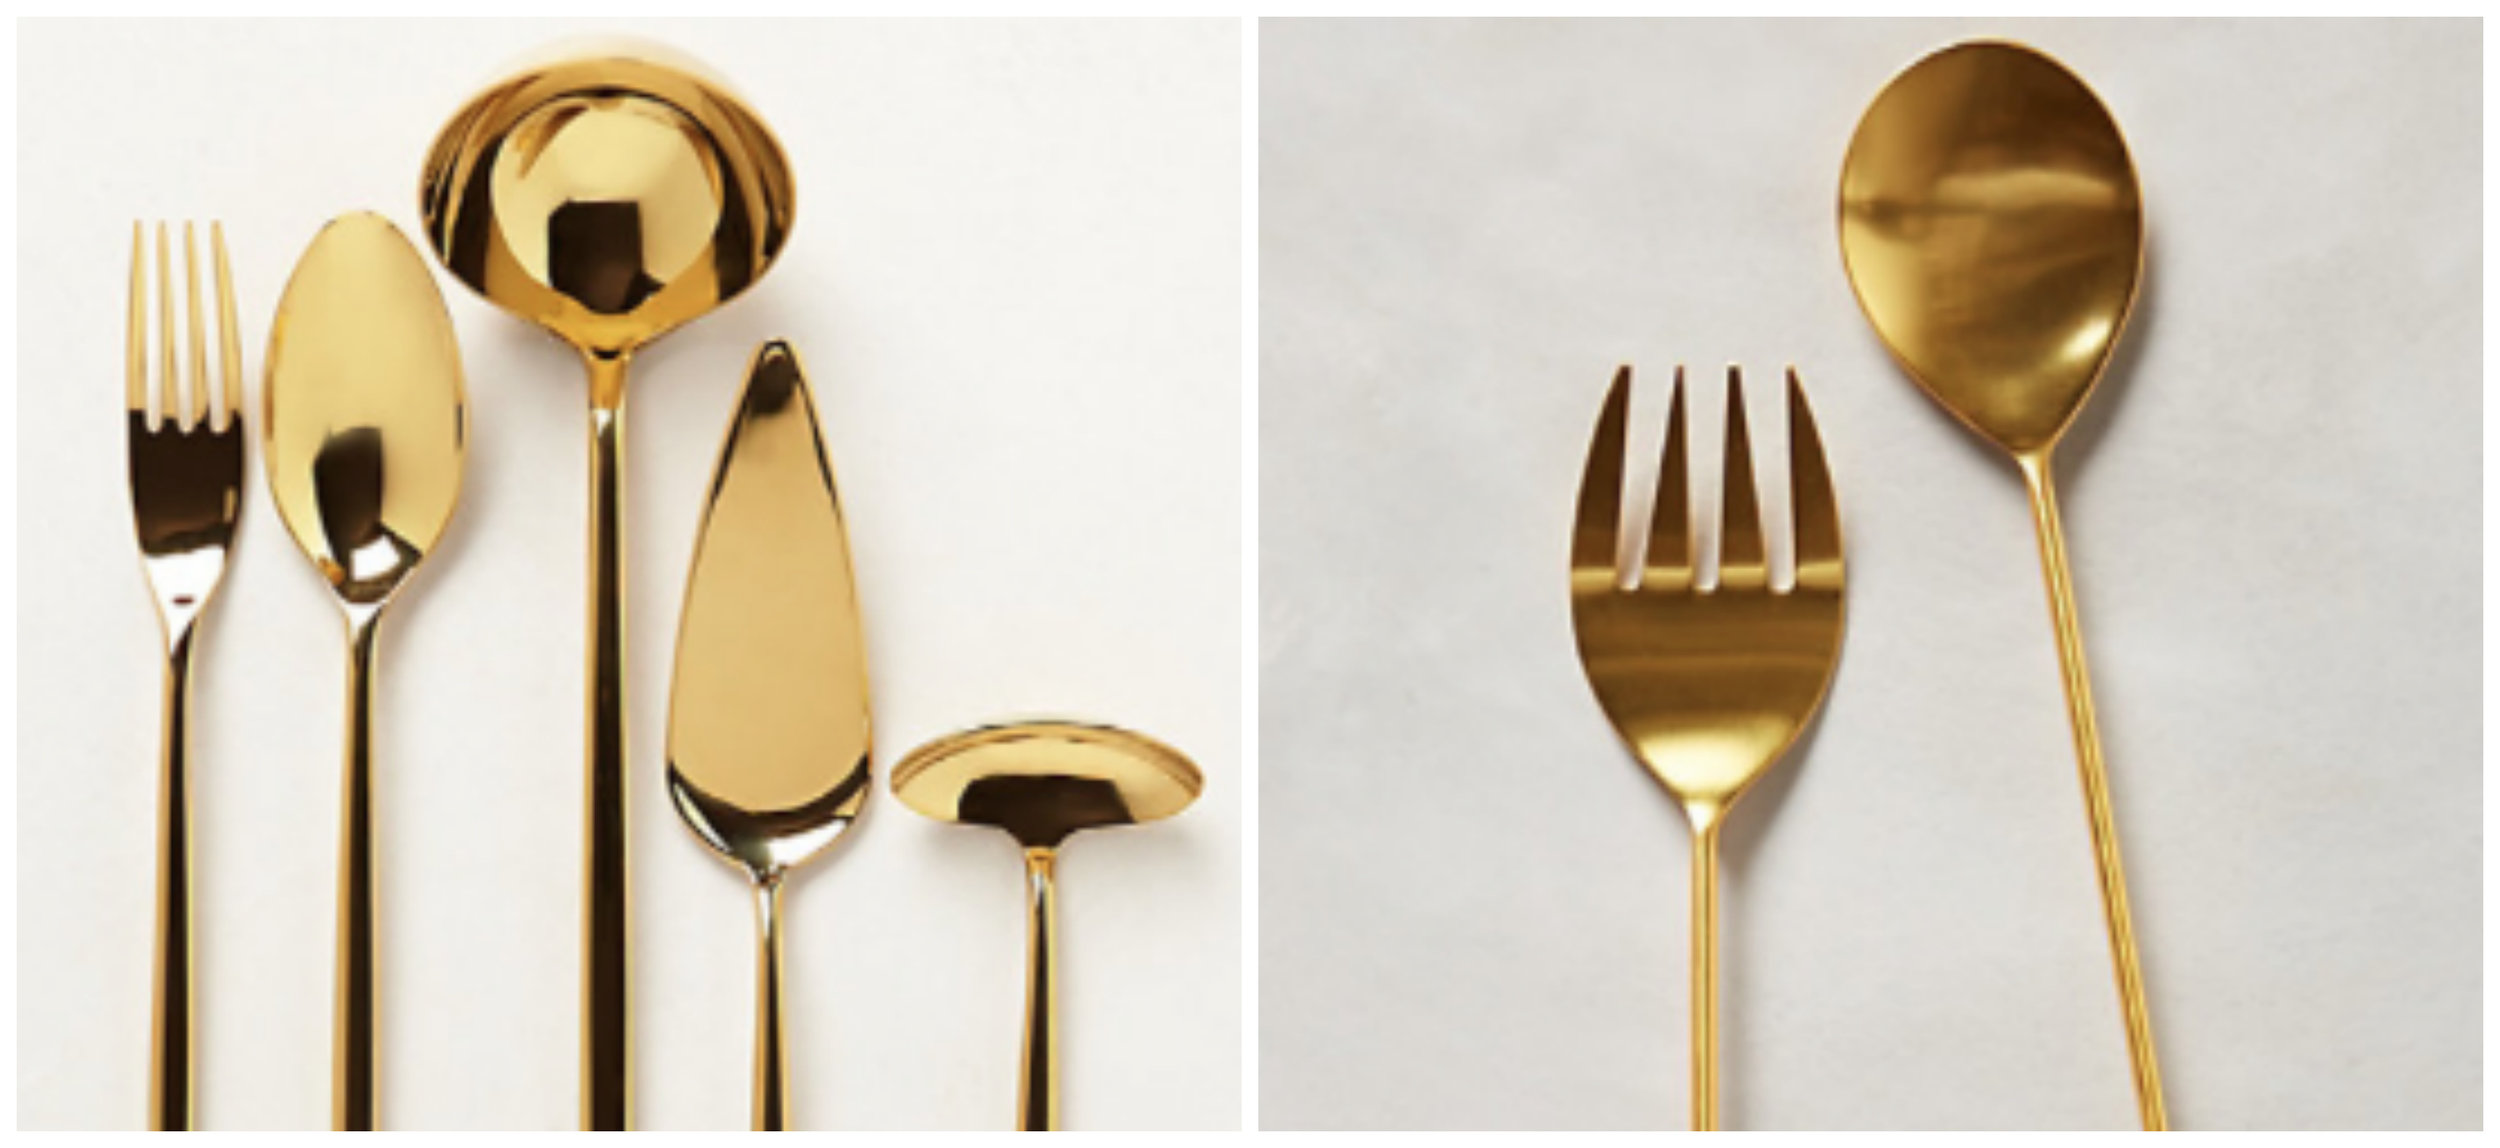 Anthropologie Serving Sets